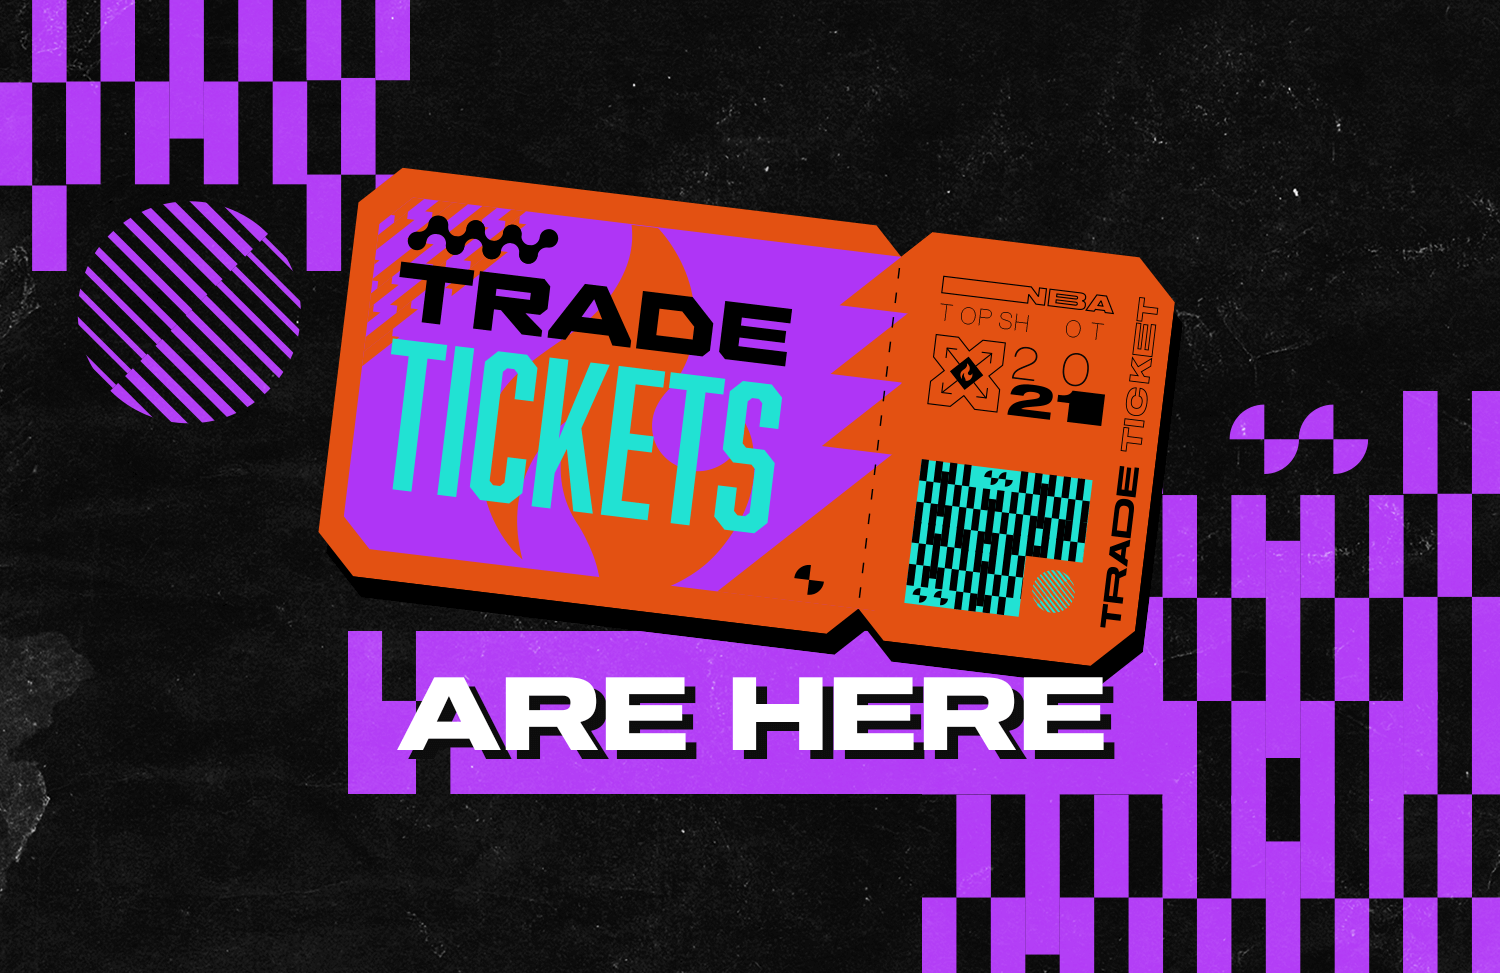 The second phase of Trade Tickets just launched. Here's everything you need to know...